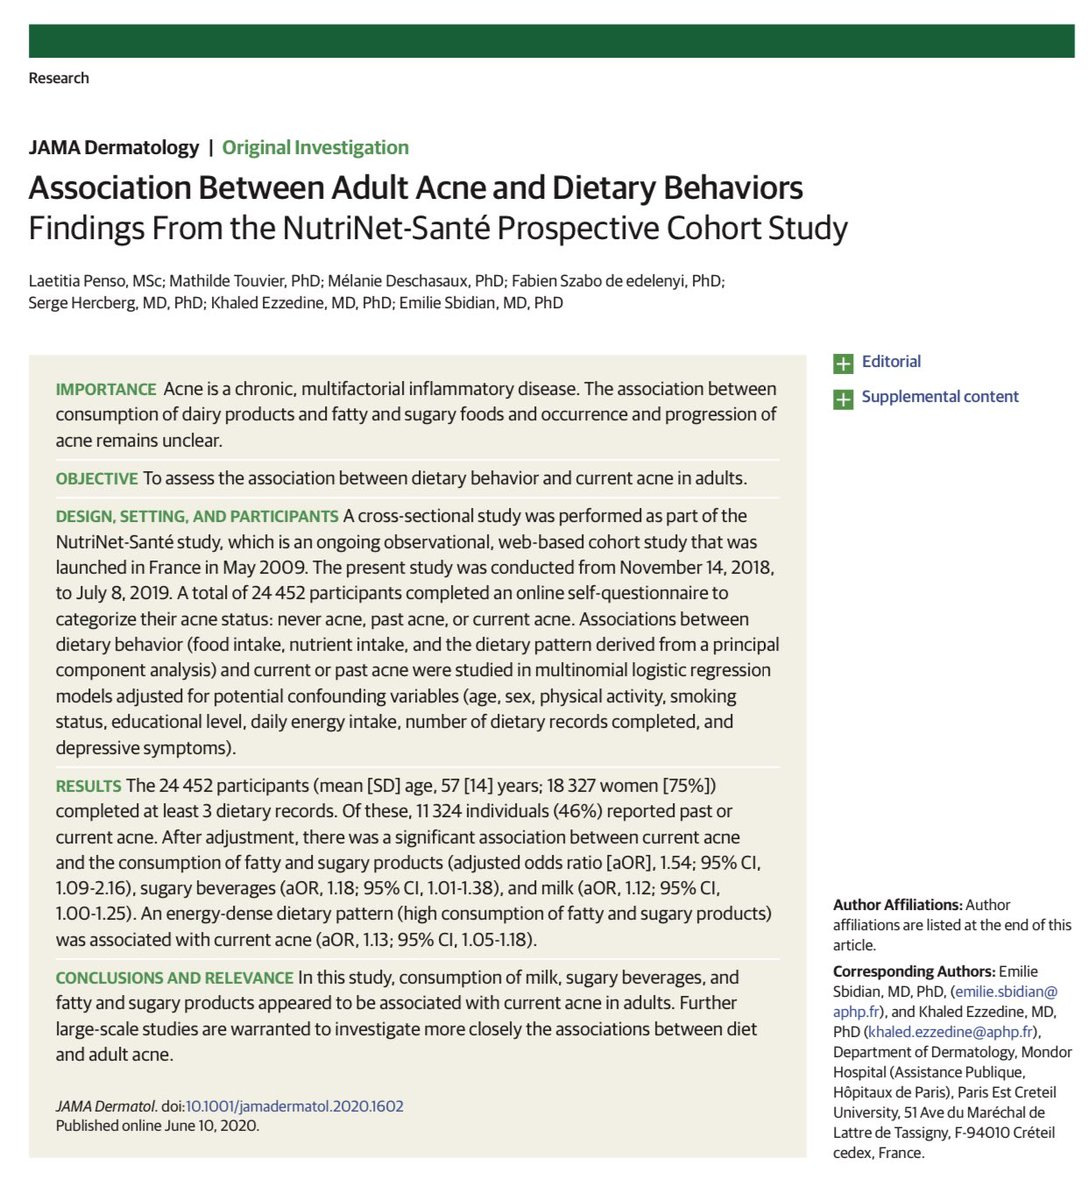 Cristobal Morales On Twitter Https T Co Jo5nqc1dya Association Between Adult Acne And Dietary Behaviors Findings From The Nutrinet Sante Prospective Cohort Study Consumption Of Milk Sugary Beverages And Fatty And Sugary Products Appeared To Be